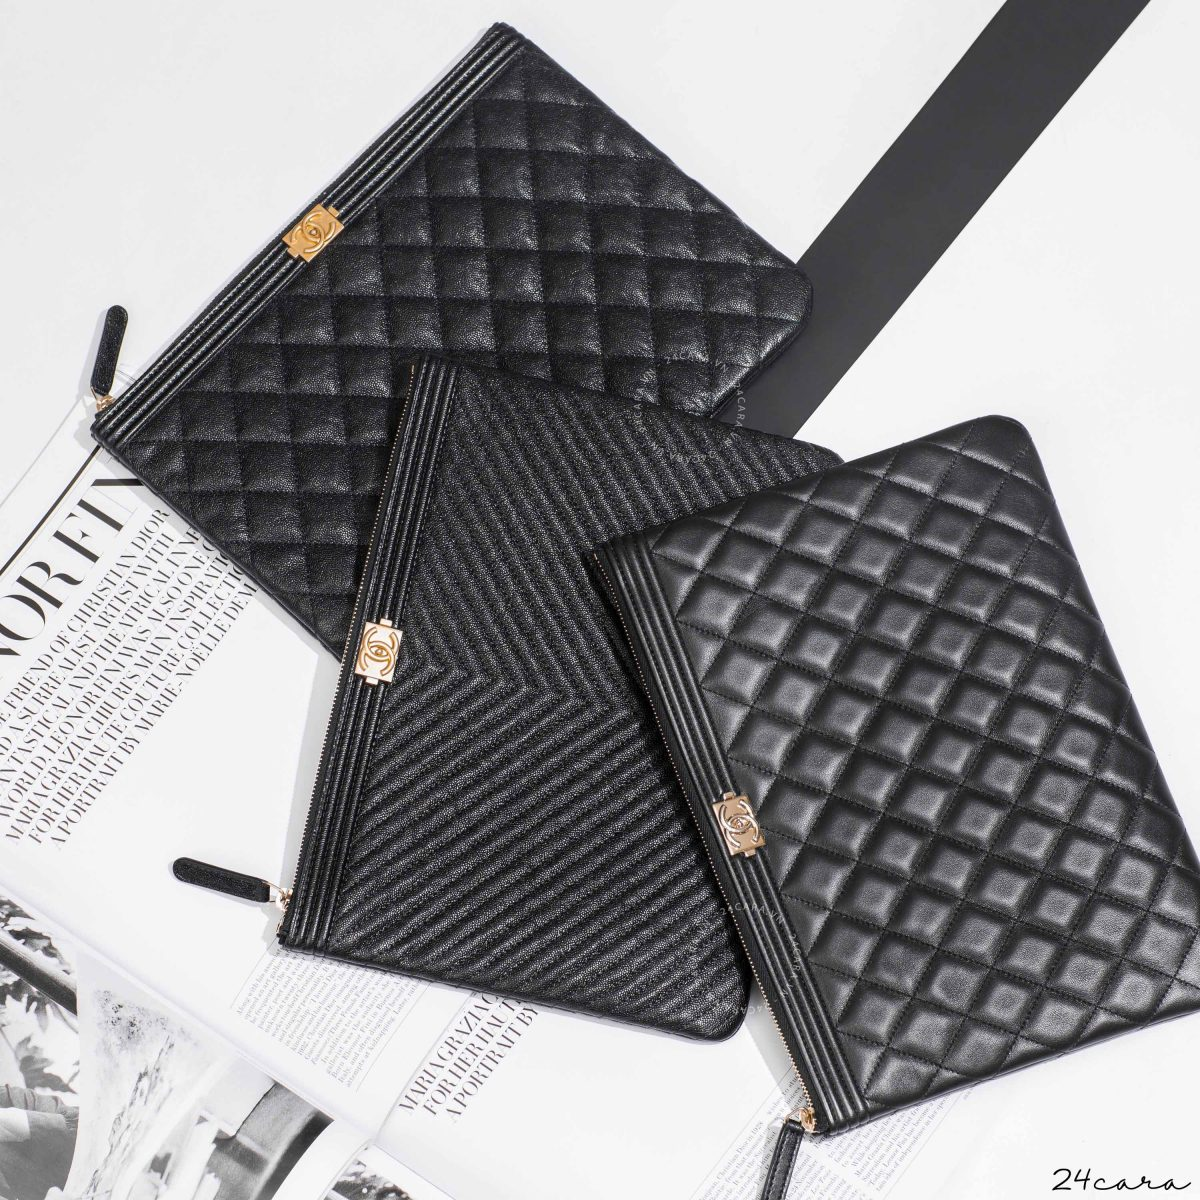 CHANEL BOY O CASE COSMETIC POUCH IN BLACK CAVIAR